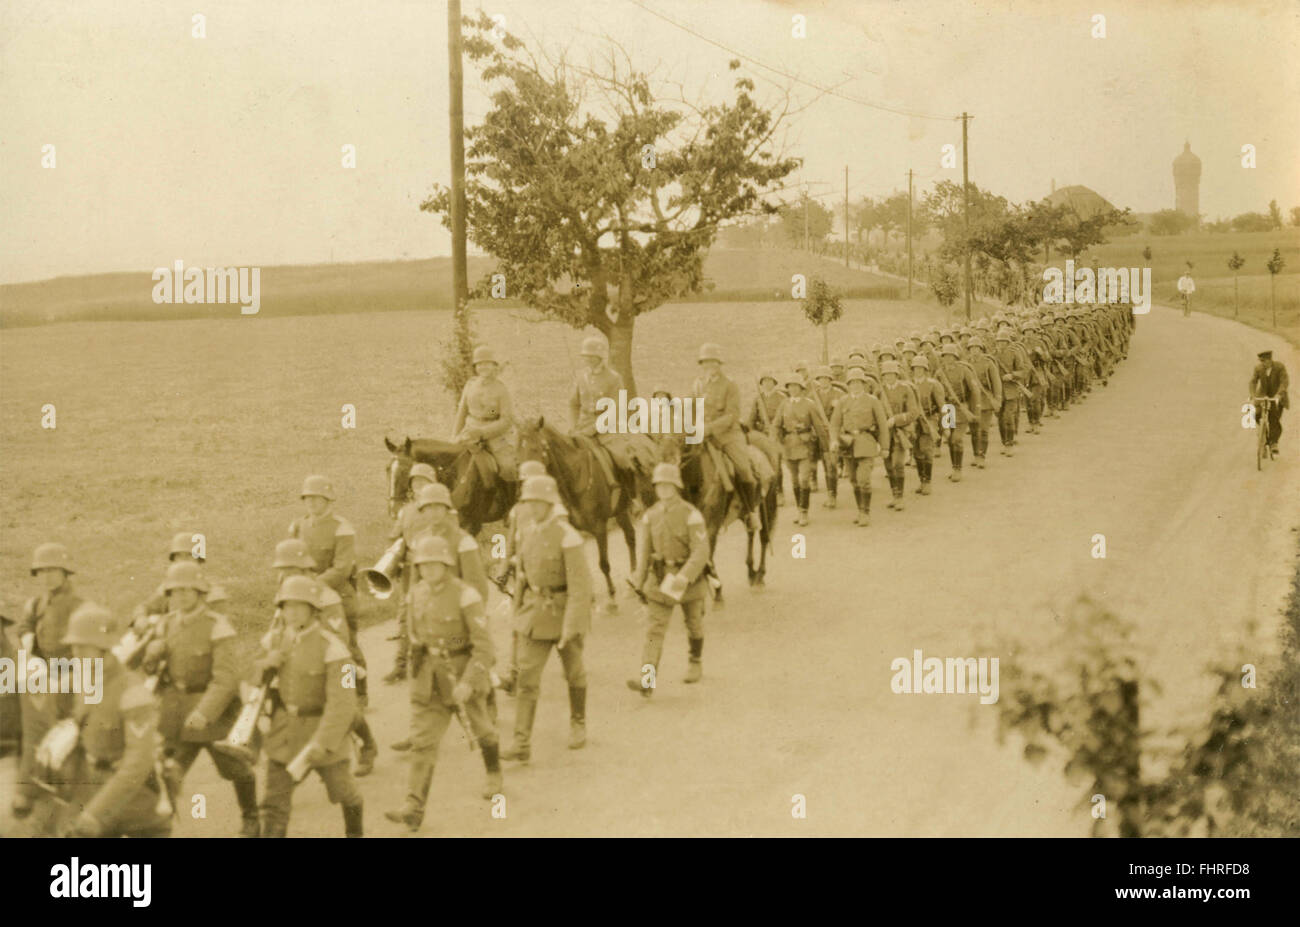 The 3rd and 4th Battalion marching, Germany - Stock Image